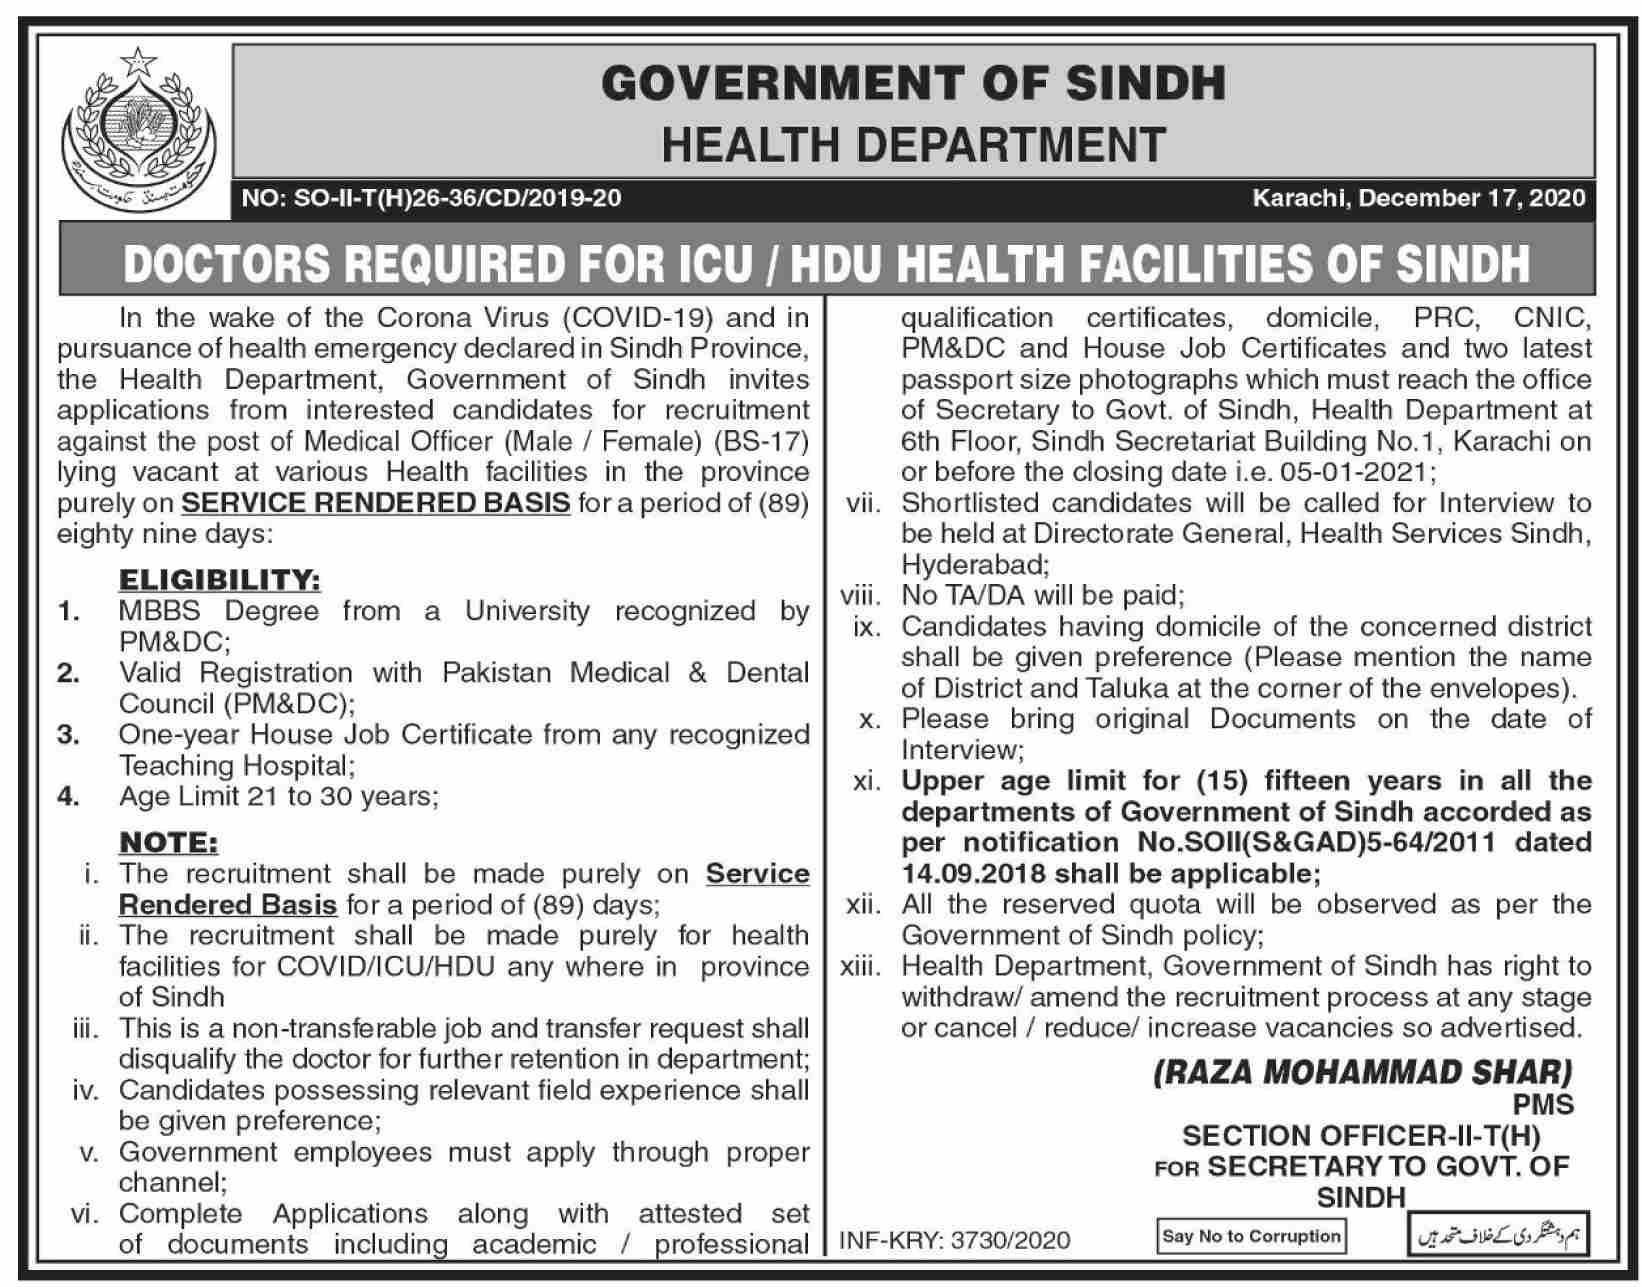 Health Department Sindh - Health Department Jobs - covid.gov.pk - Will County Health Department - Health Dep - Department of Health